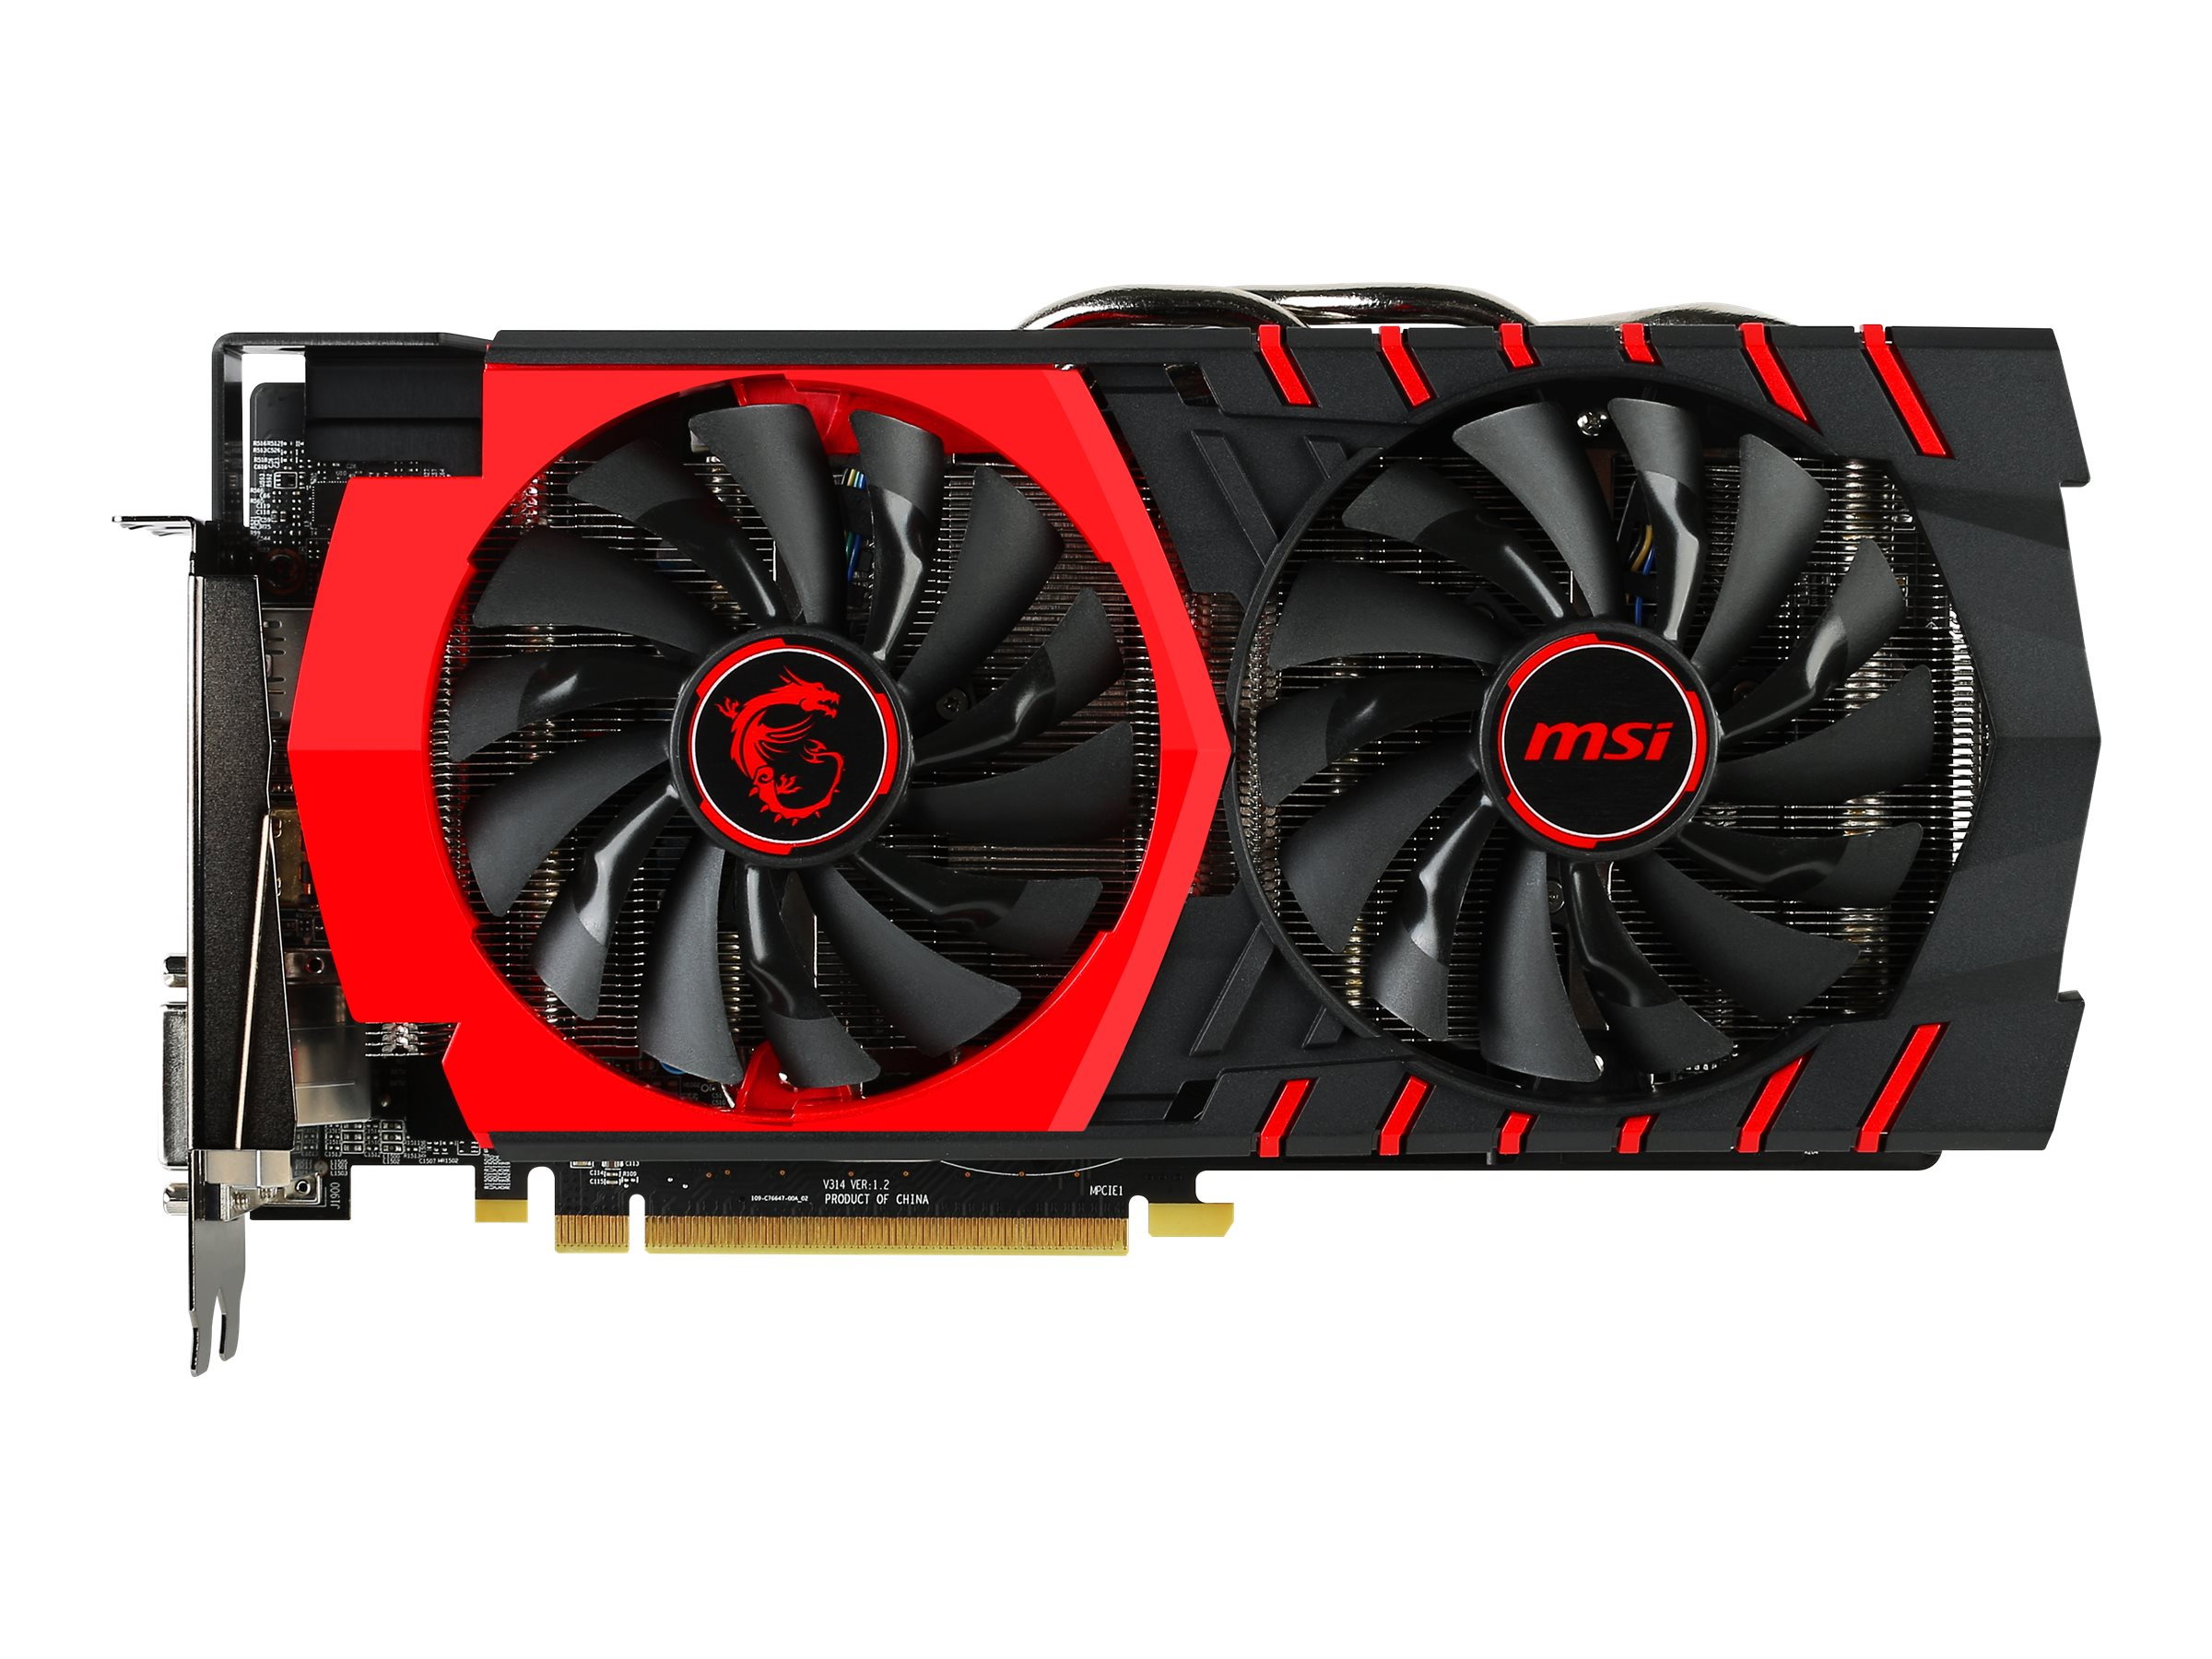 Microstar Radeon R9 380 PCIe Graphics Card, 2GB GDDR5, R9 380 GAMING 2G, 23306141, Graphics/Video Accelerators